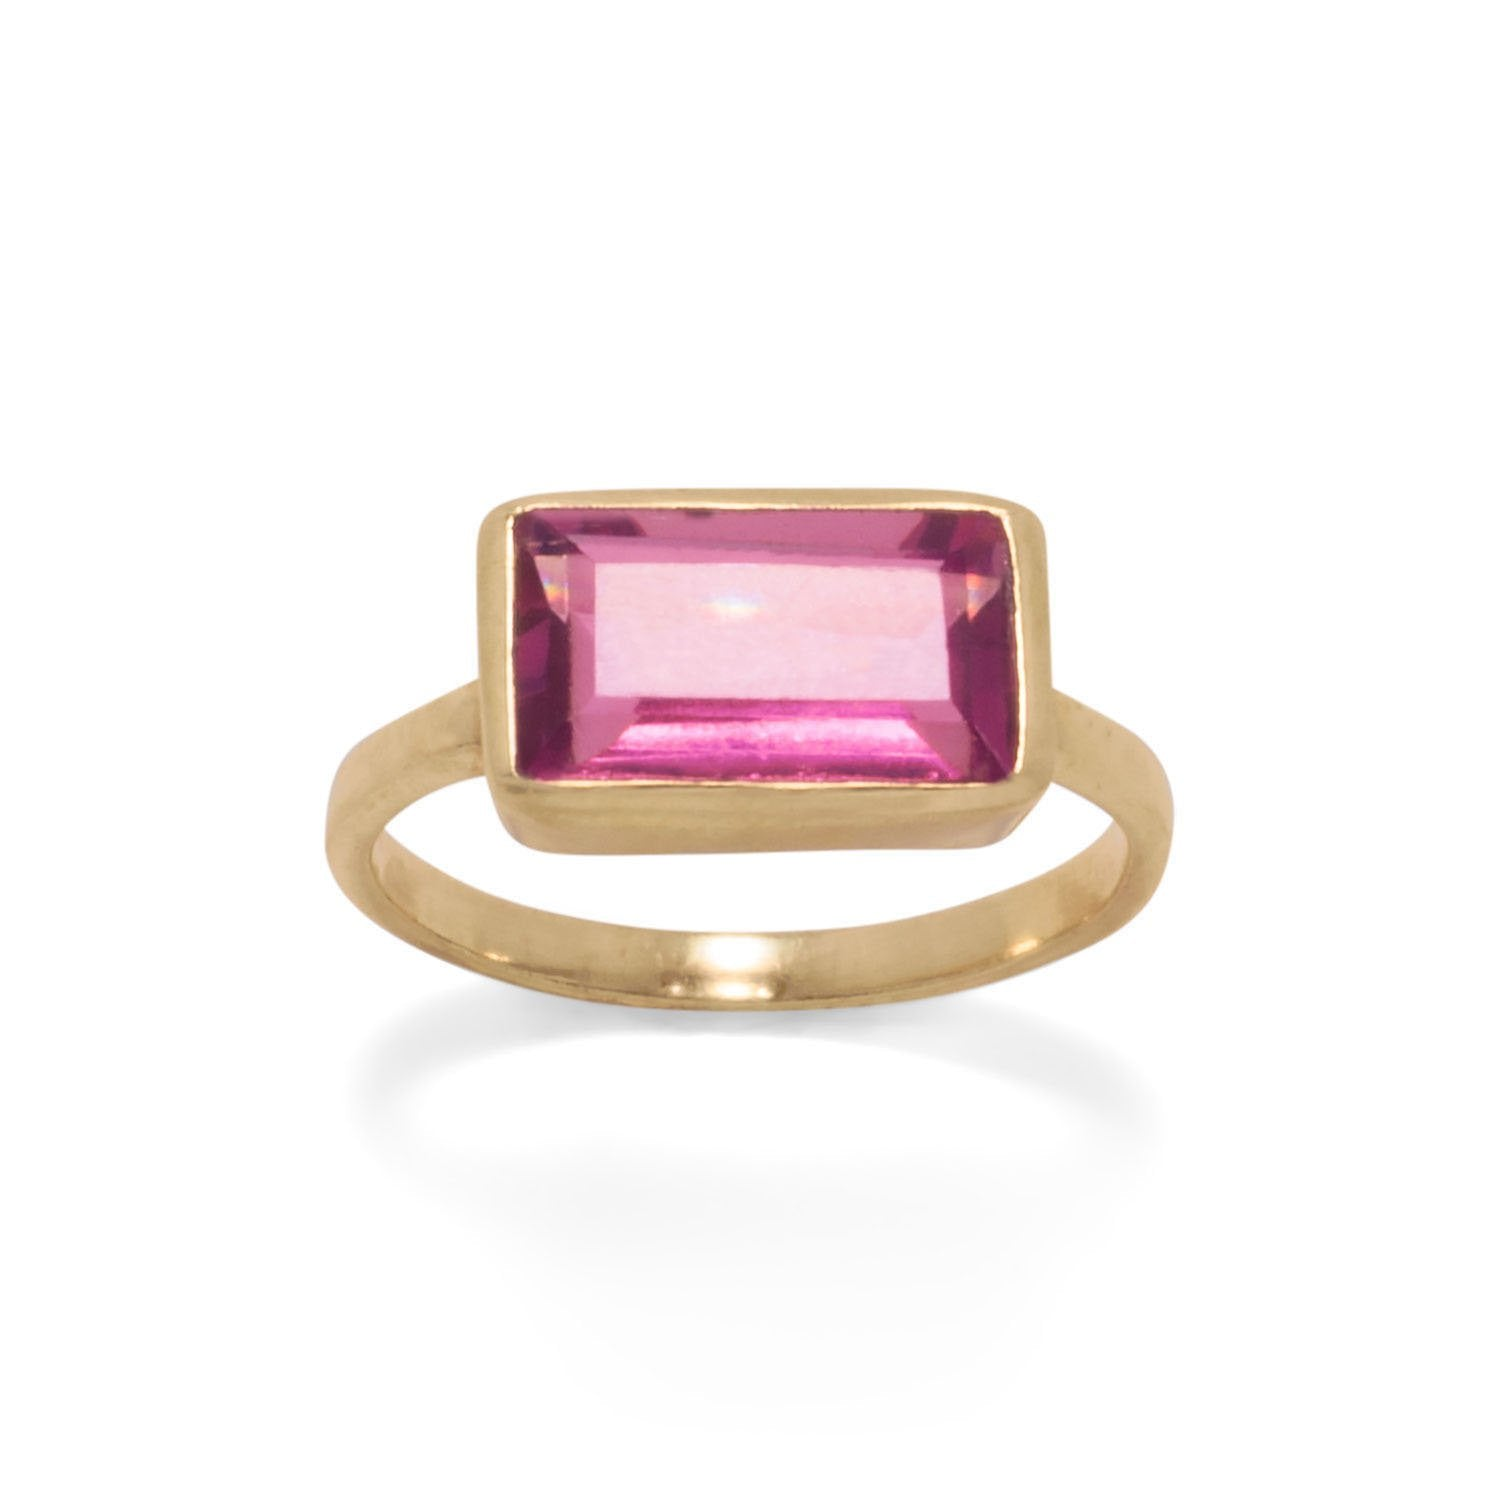 14 Karat Gold Plated Pink Glass Rectangle Ring - Rocky Mt. Discount Outlet